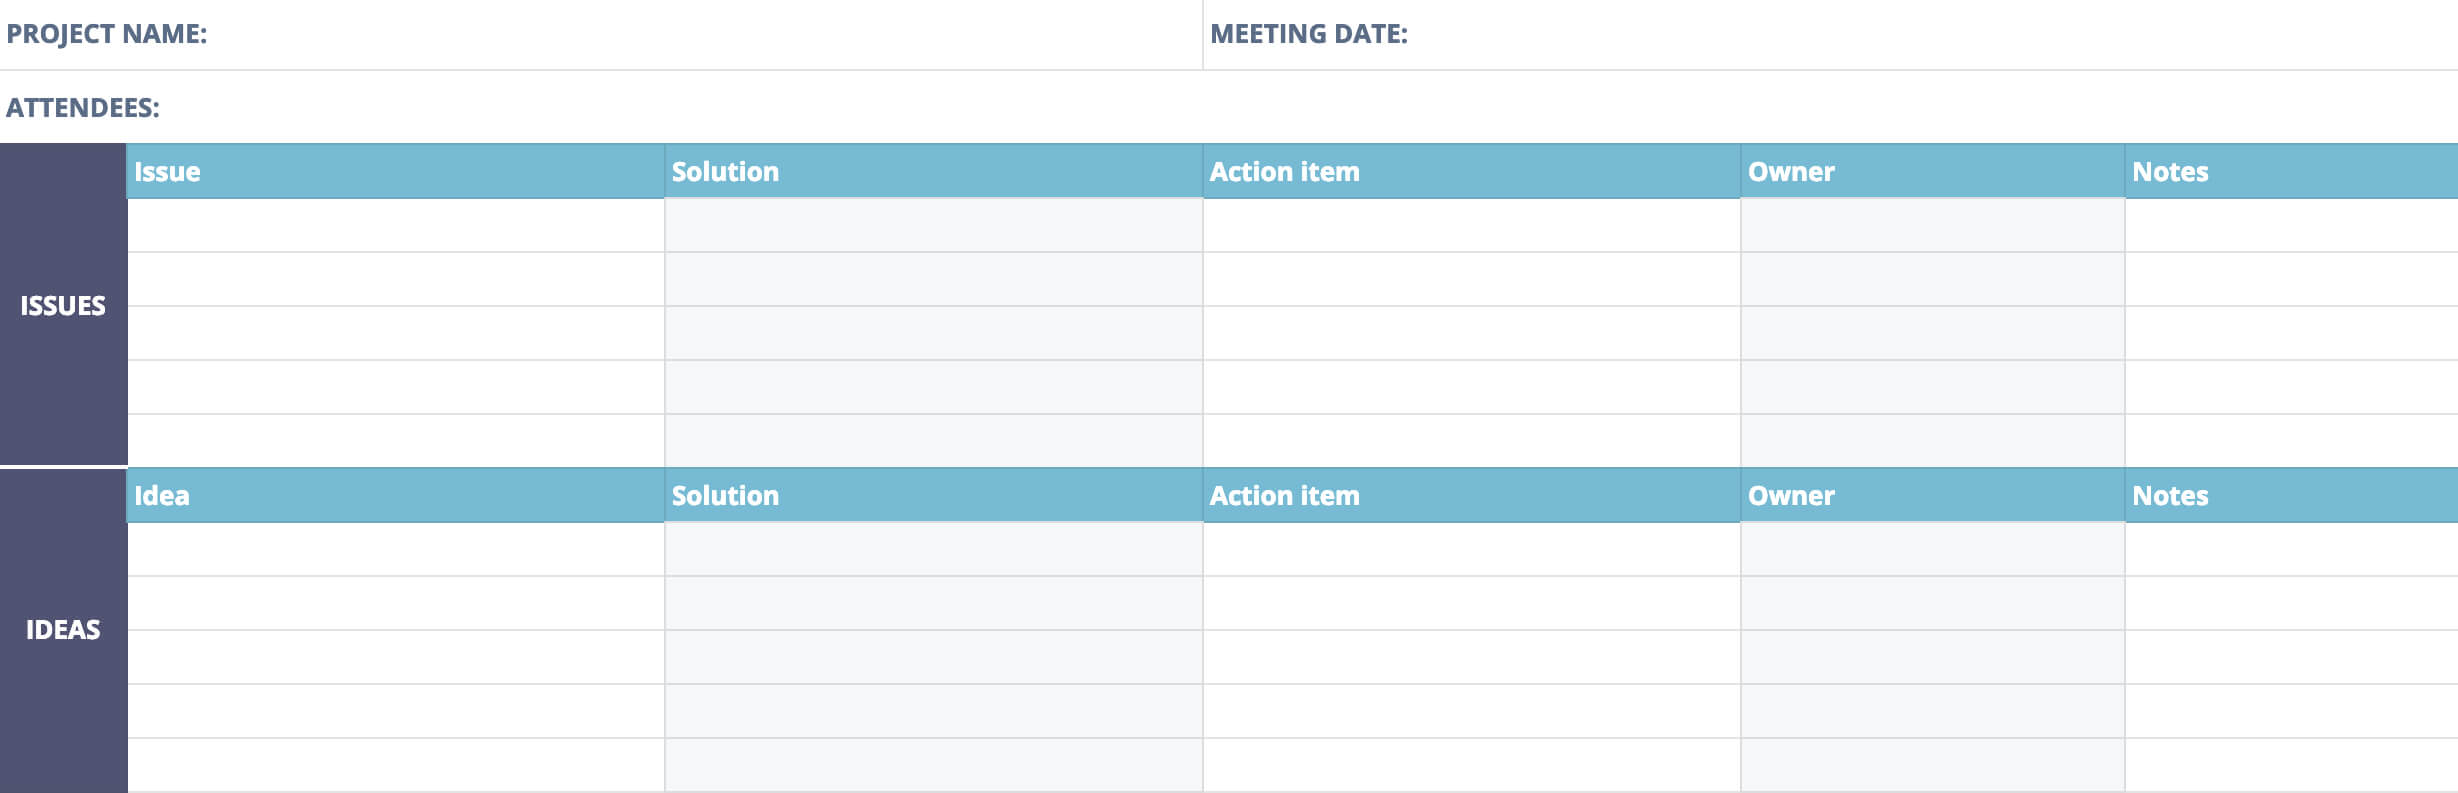 Post Mortem Meeting Template And Tips | Teamgantt Pertaining To Debriefing Report Template